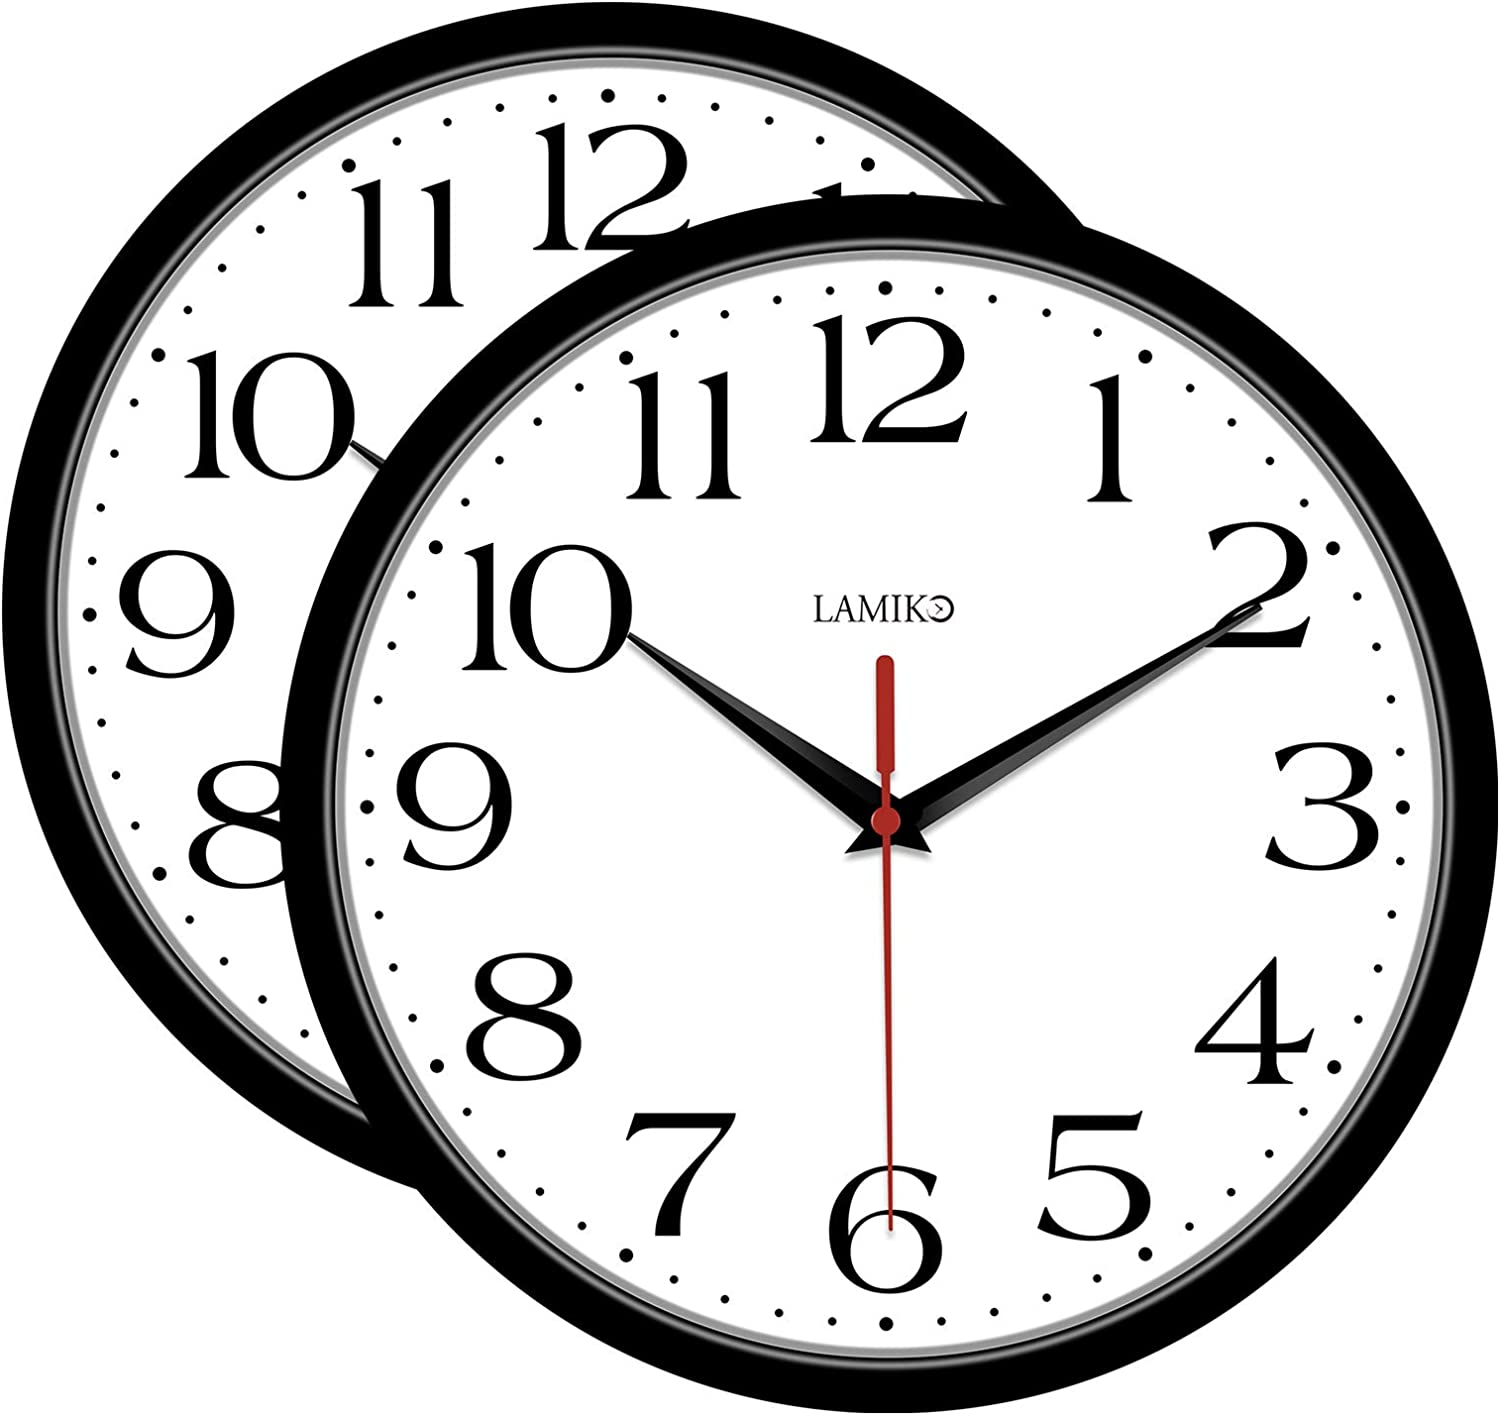 LAMIKO 2Packs Non-Ticking Wall Clocks 10 Inch Silent Battery Operated Classic Quartz Decro Clock Easy to Read for Room/Home/Kitchen/Bedroom/Office/School, Black: Kitchen & Dining